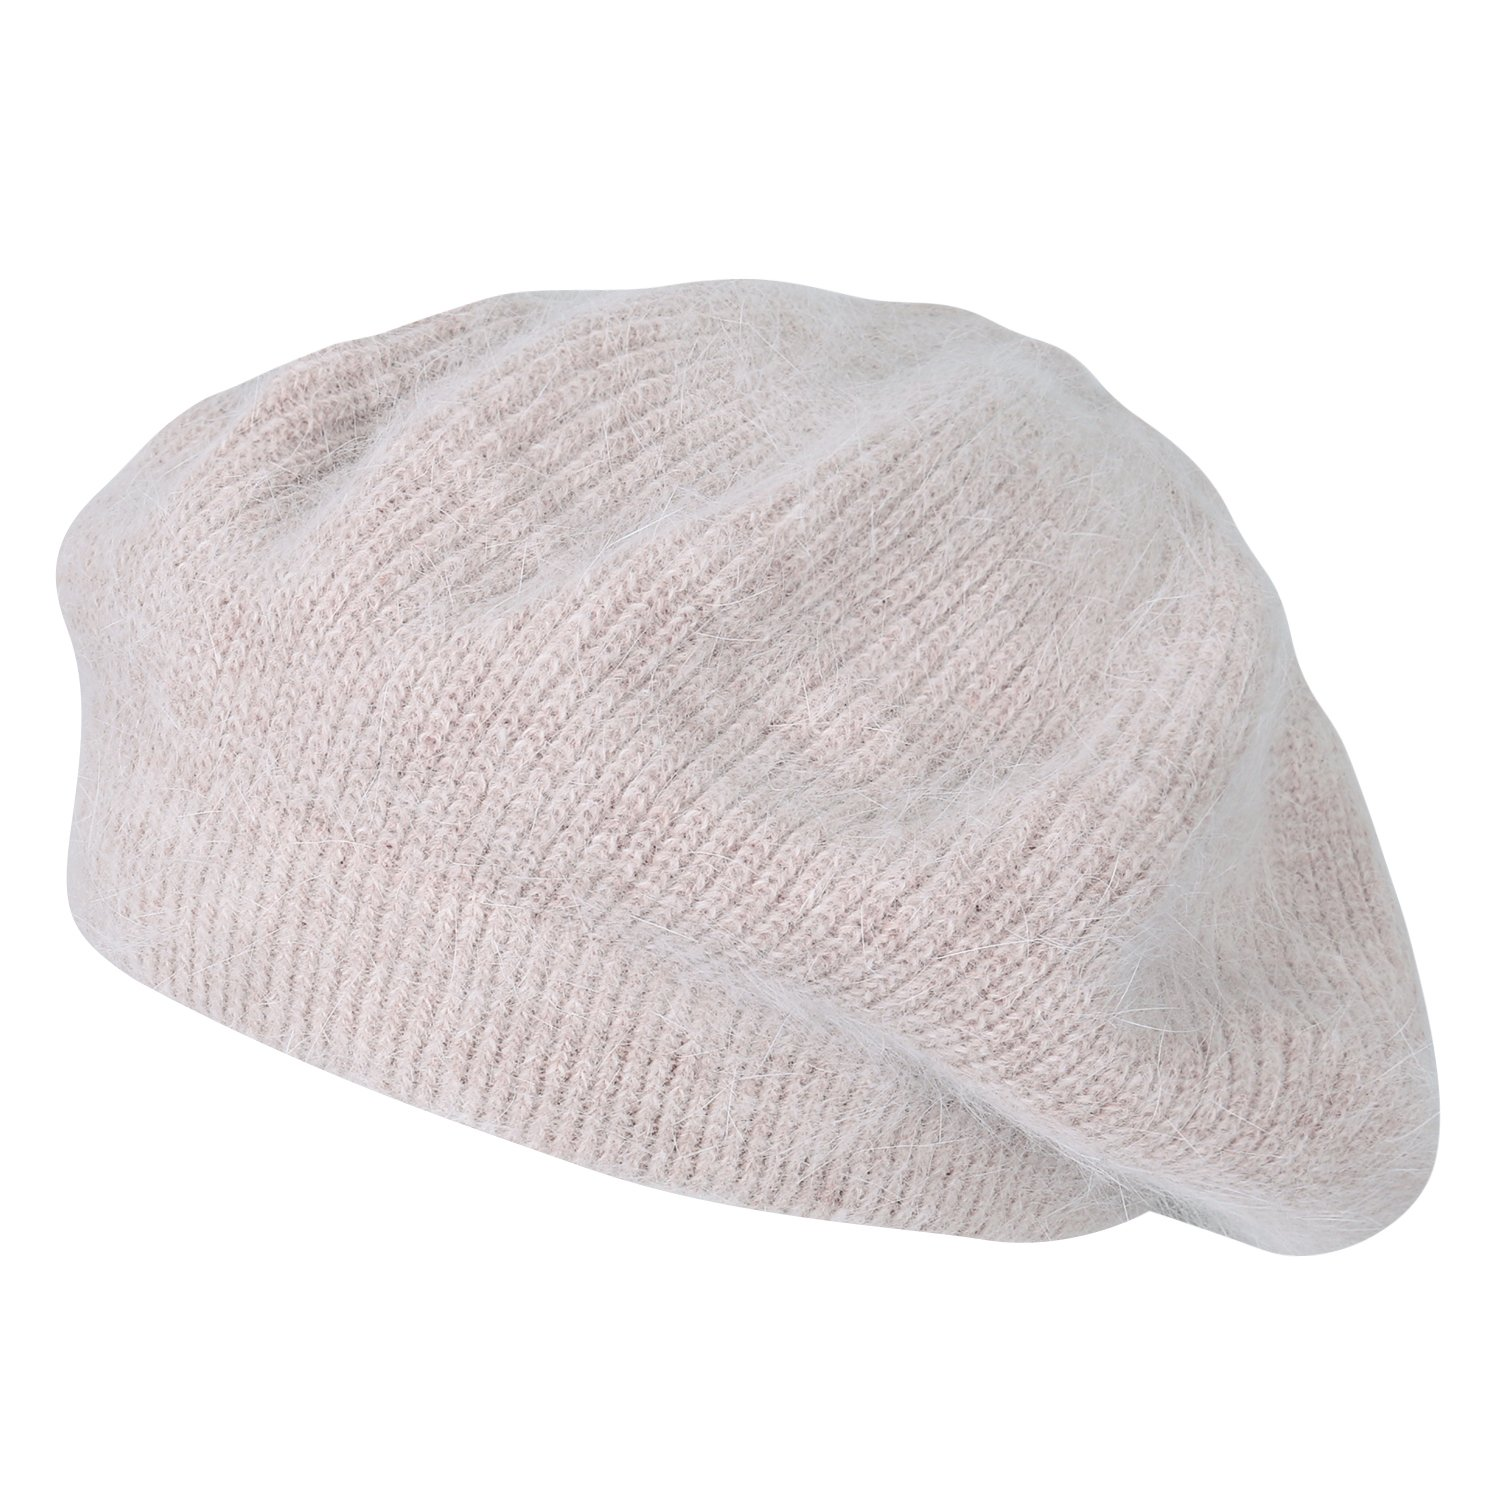 ililily Solid Color Angora French Beret Knit Artist Flat Winter Hat, Beige